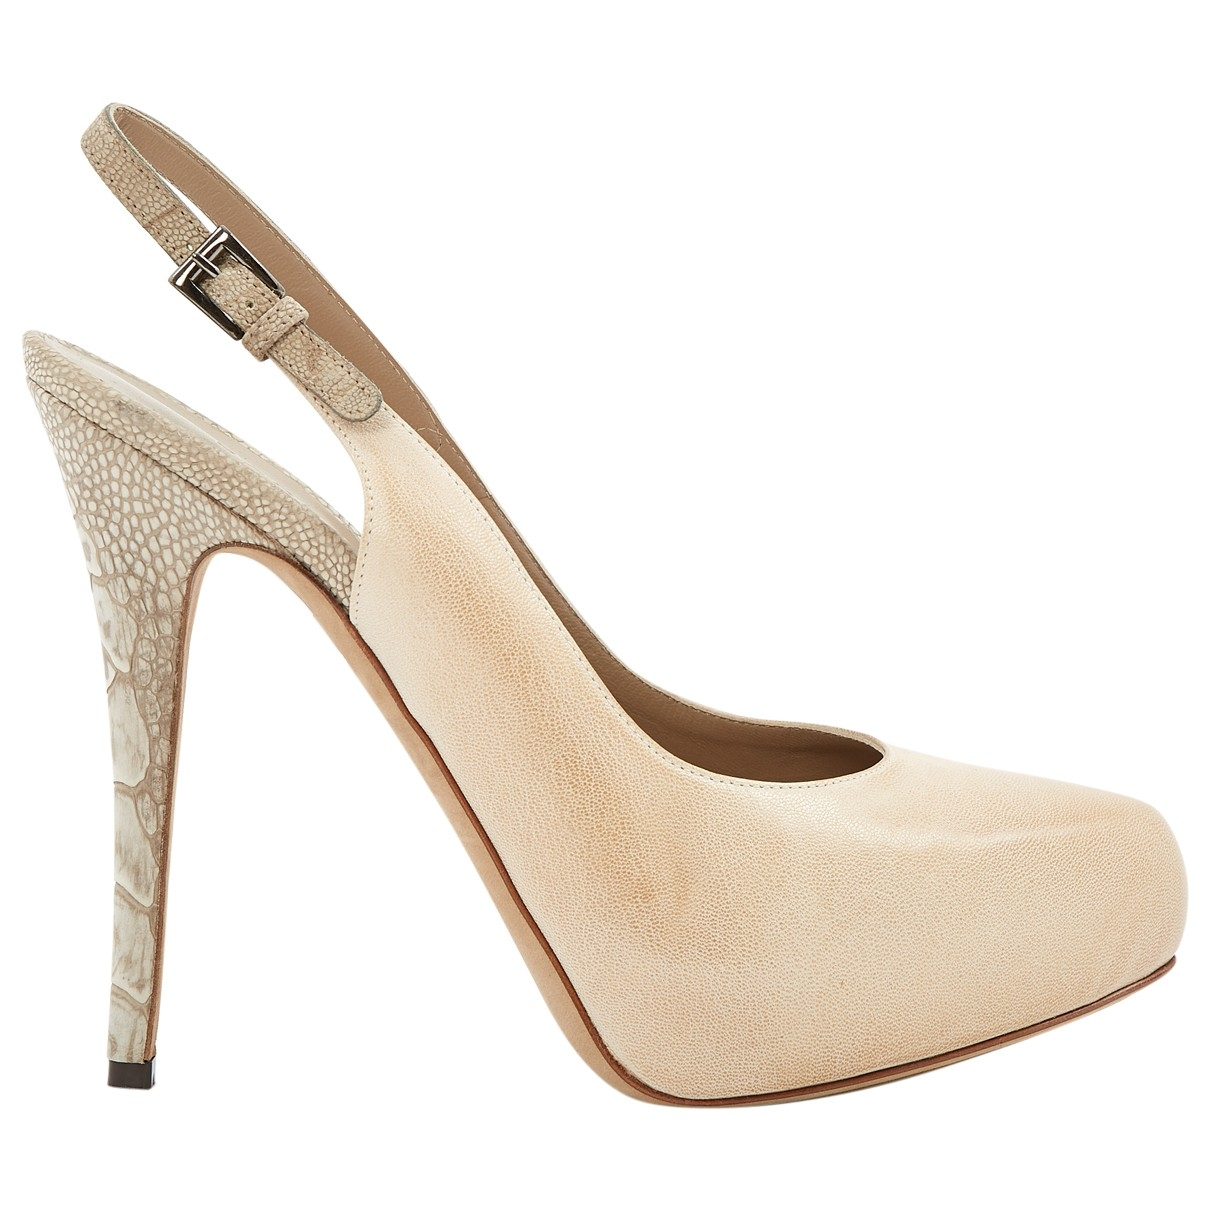 Barbara Bui \N Beige Leather Heels for Women 39 EU